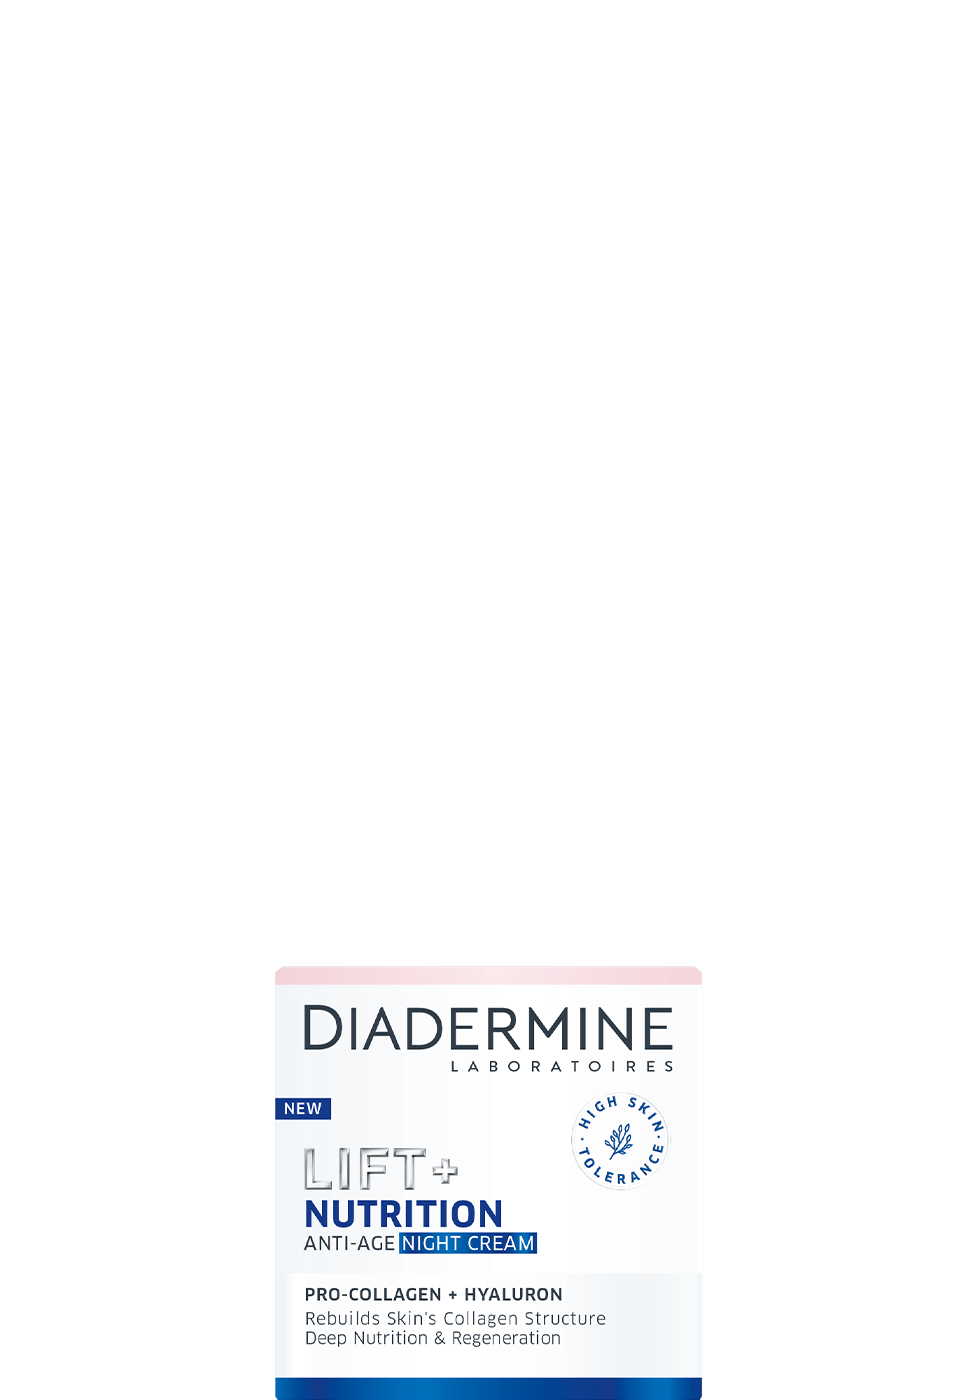 diadermine_com_lift_plus_nutri-lifting_night_cream_970x1400